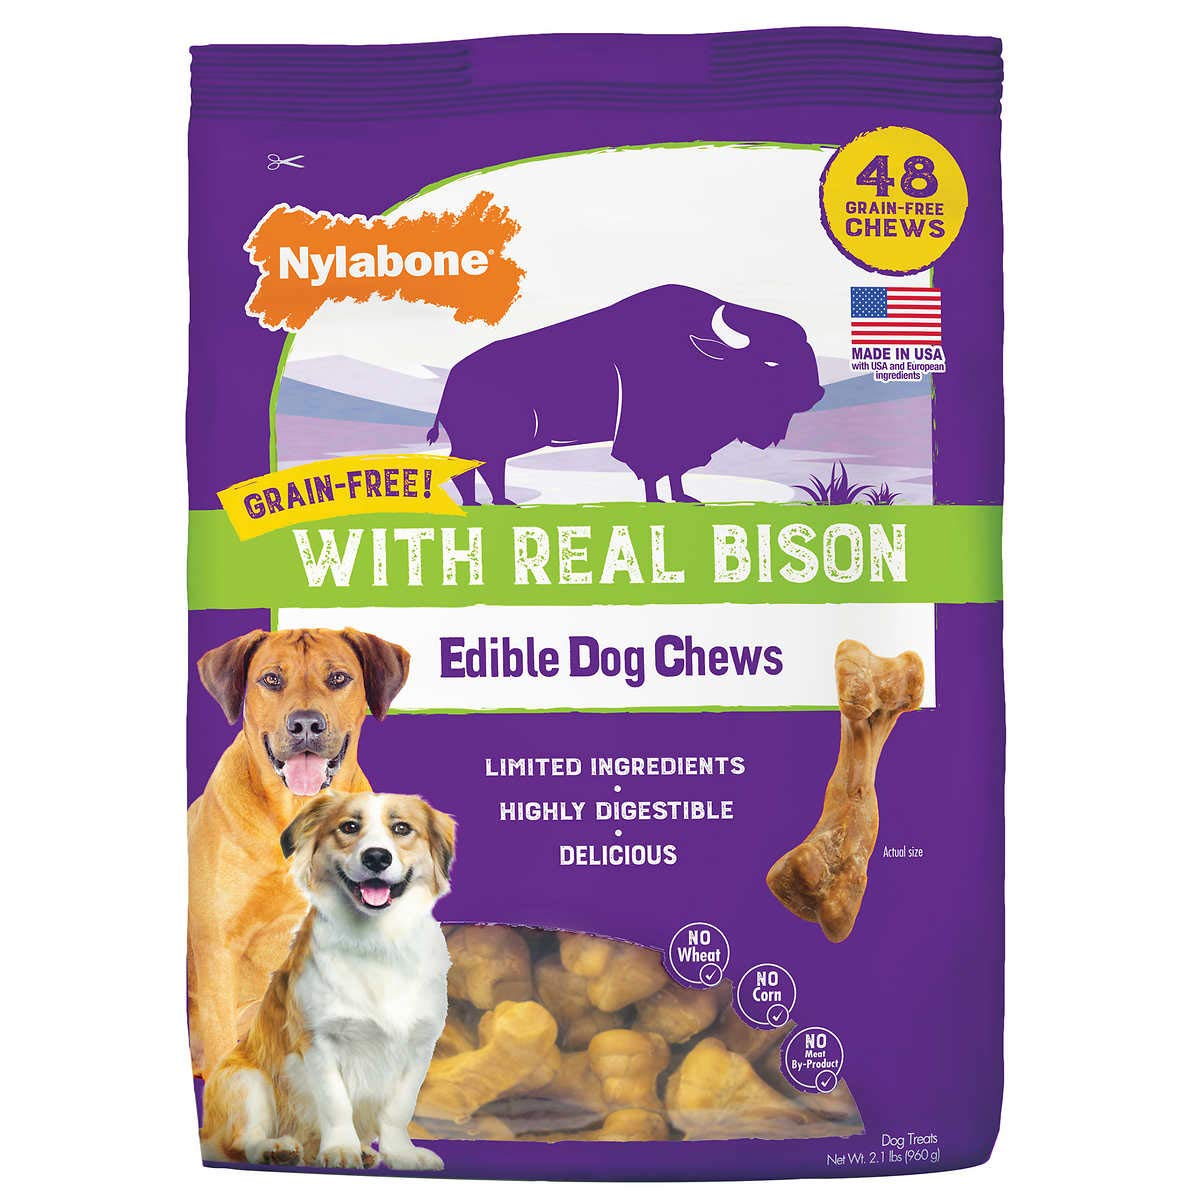 Nylabon Grain-Free with Real Bison Edible Dog Chews 48-Count